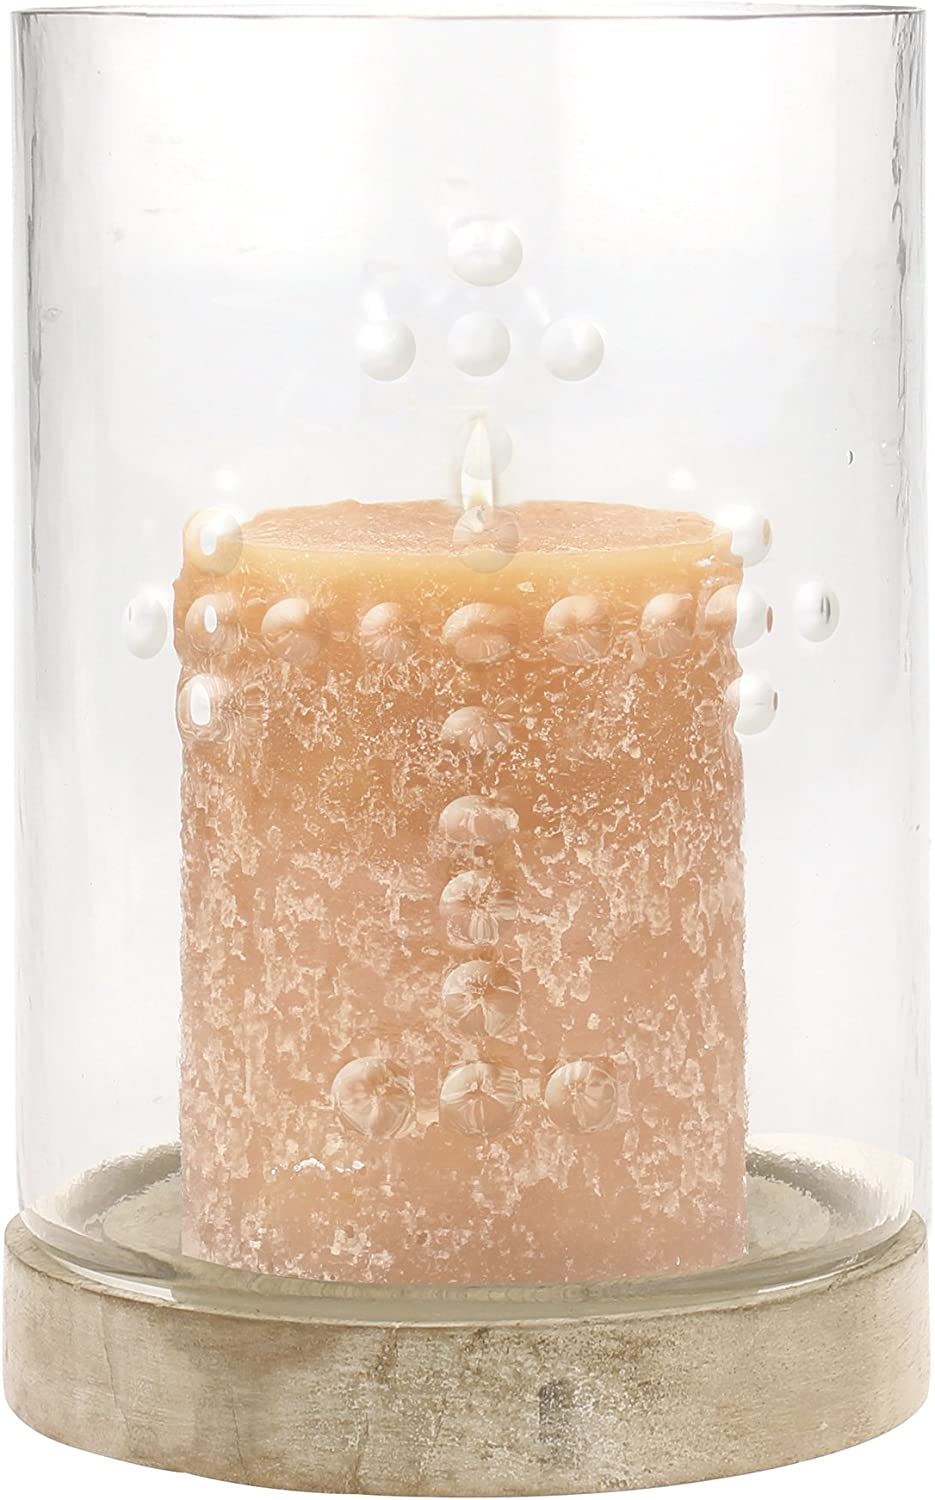 Stonebriar Decorative Pressed Glass Hurricane Pillar Candle Holder with Raised Cross Detail and Wooden Base, Religious Home Decor Accessories, Decoration for Mantel, Table Top, or Prayer Alter